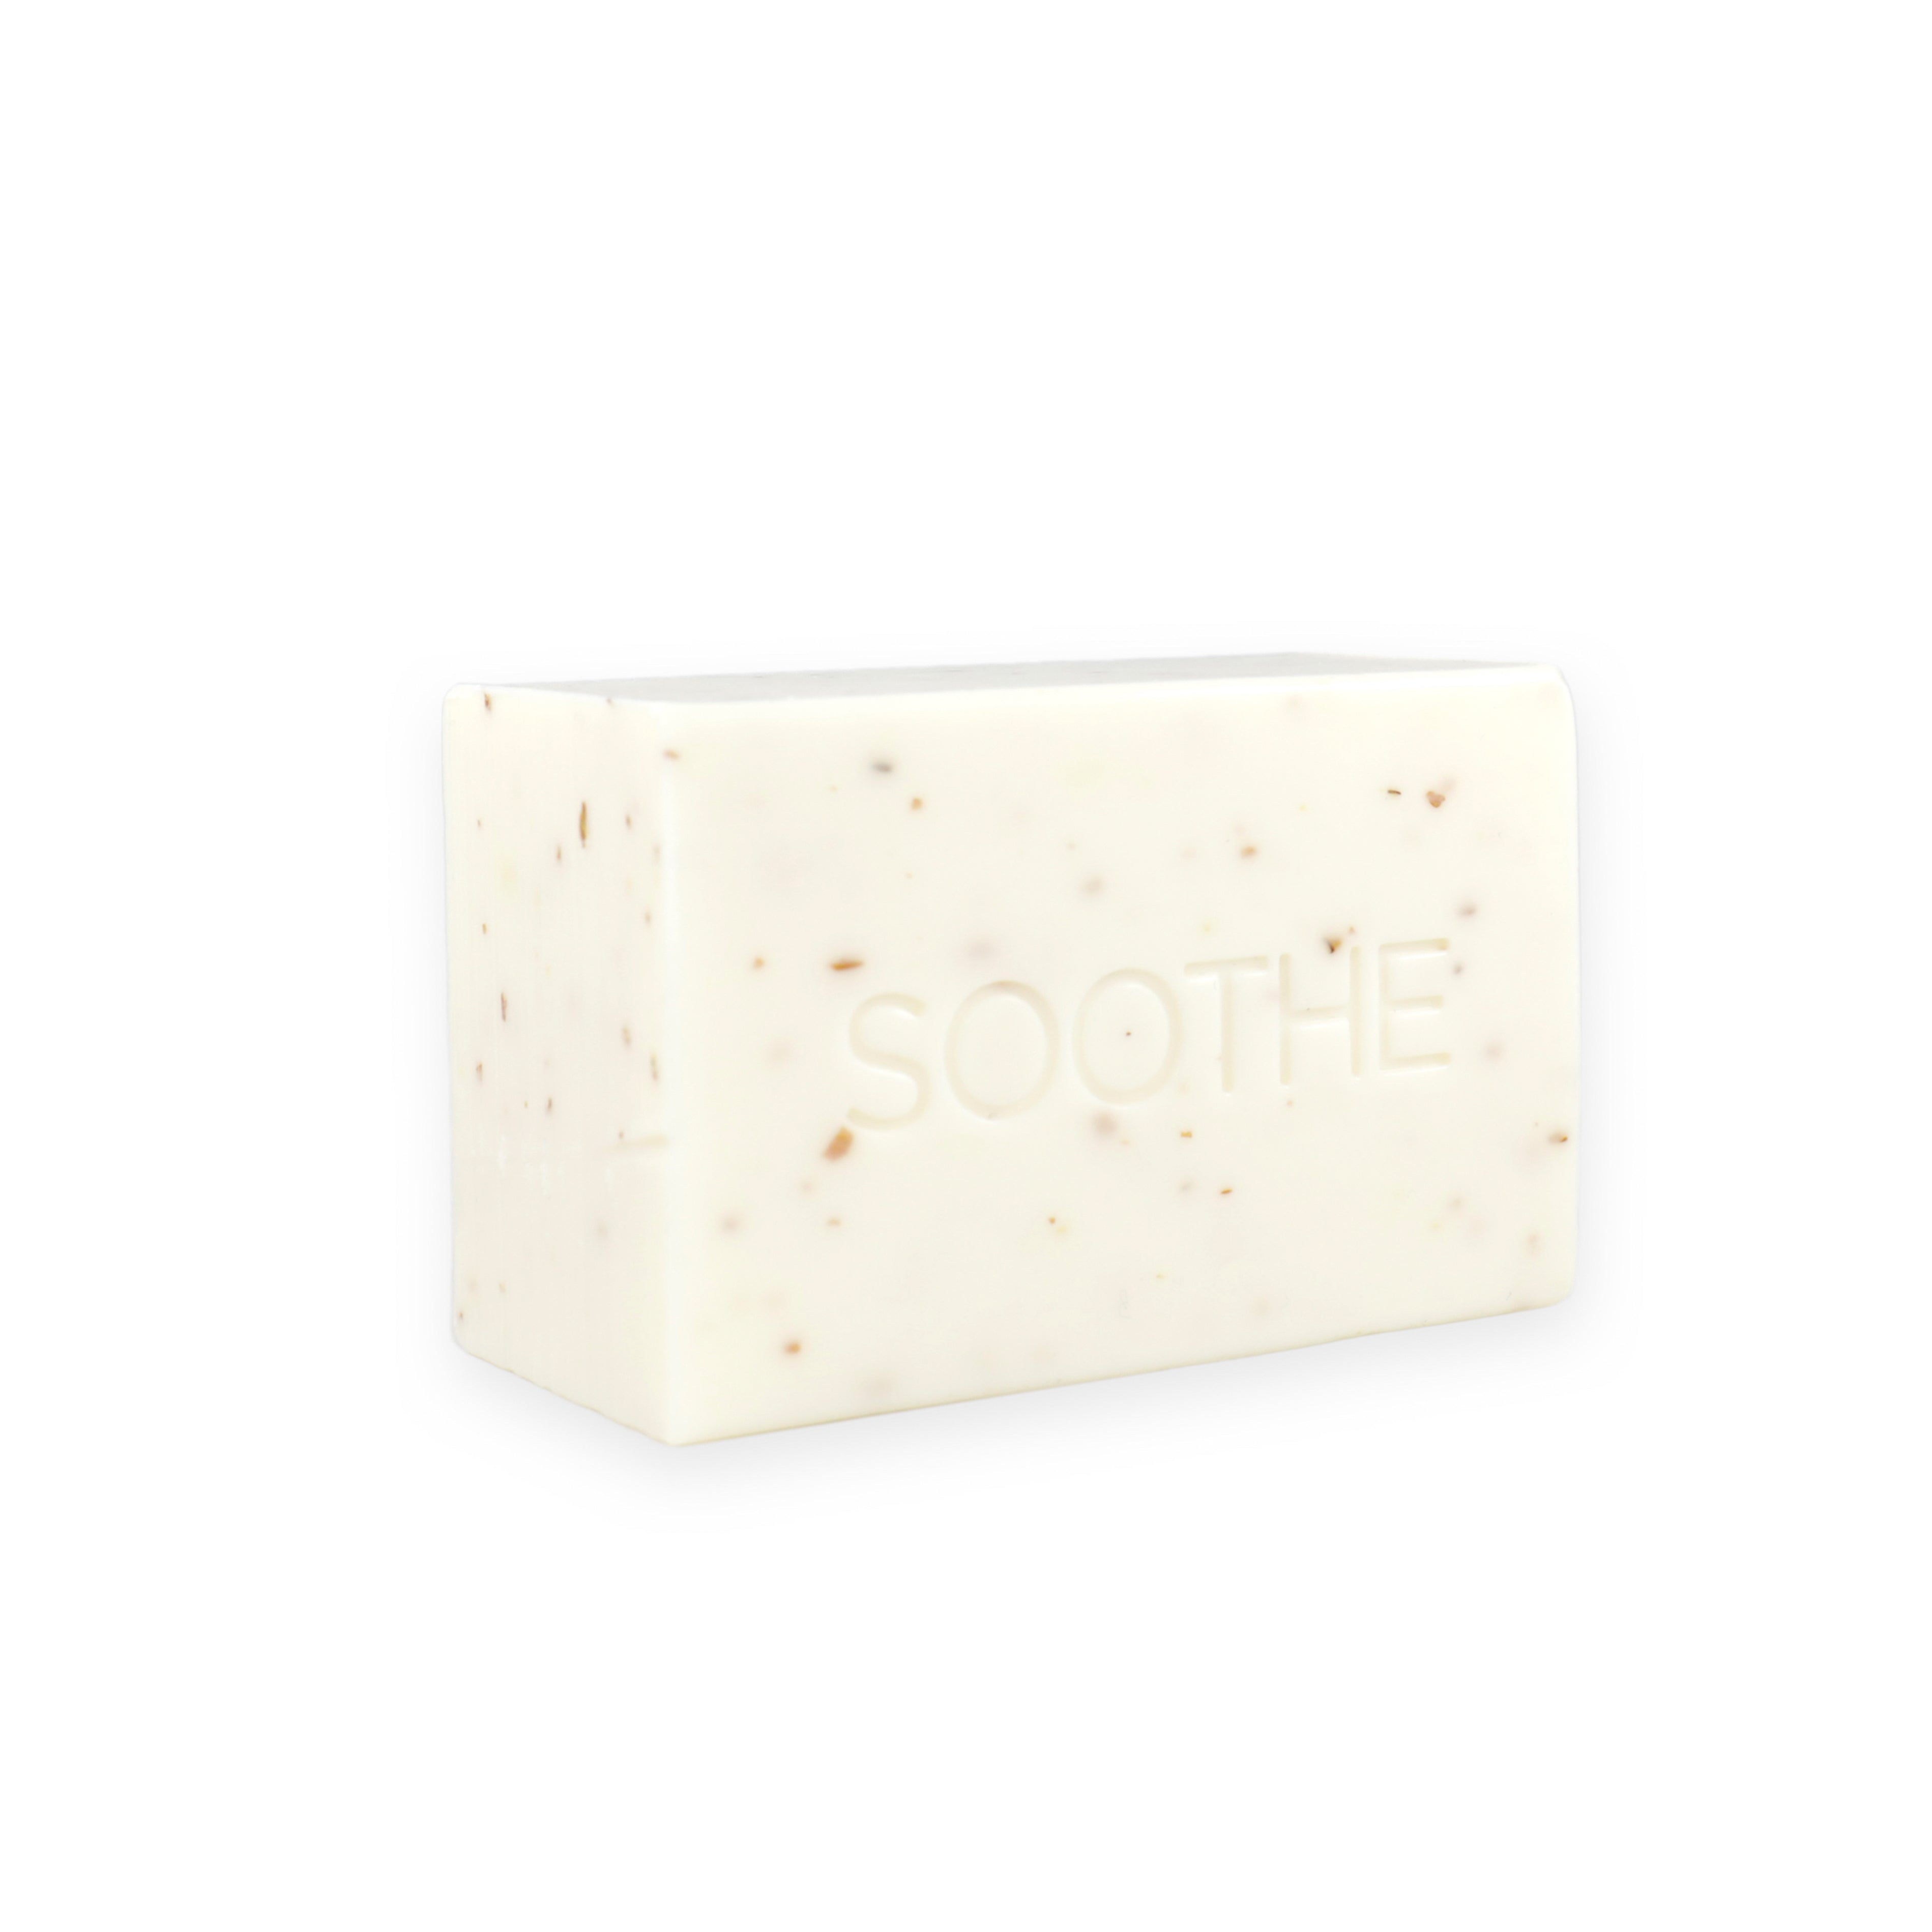 White Tea Marigold Large Soap Bar - Gentle Exfoliation